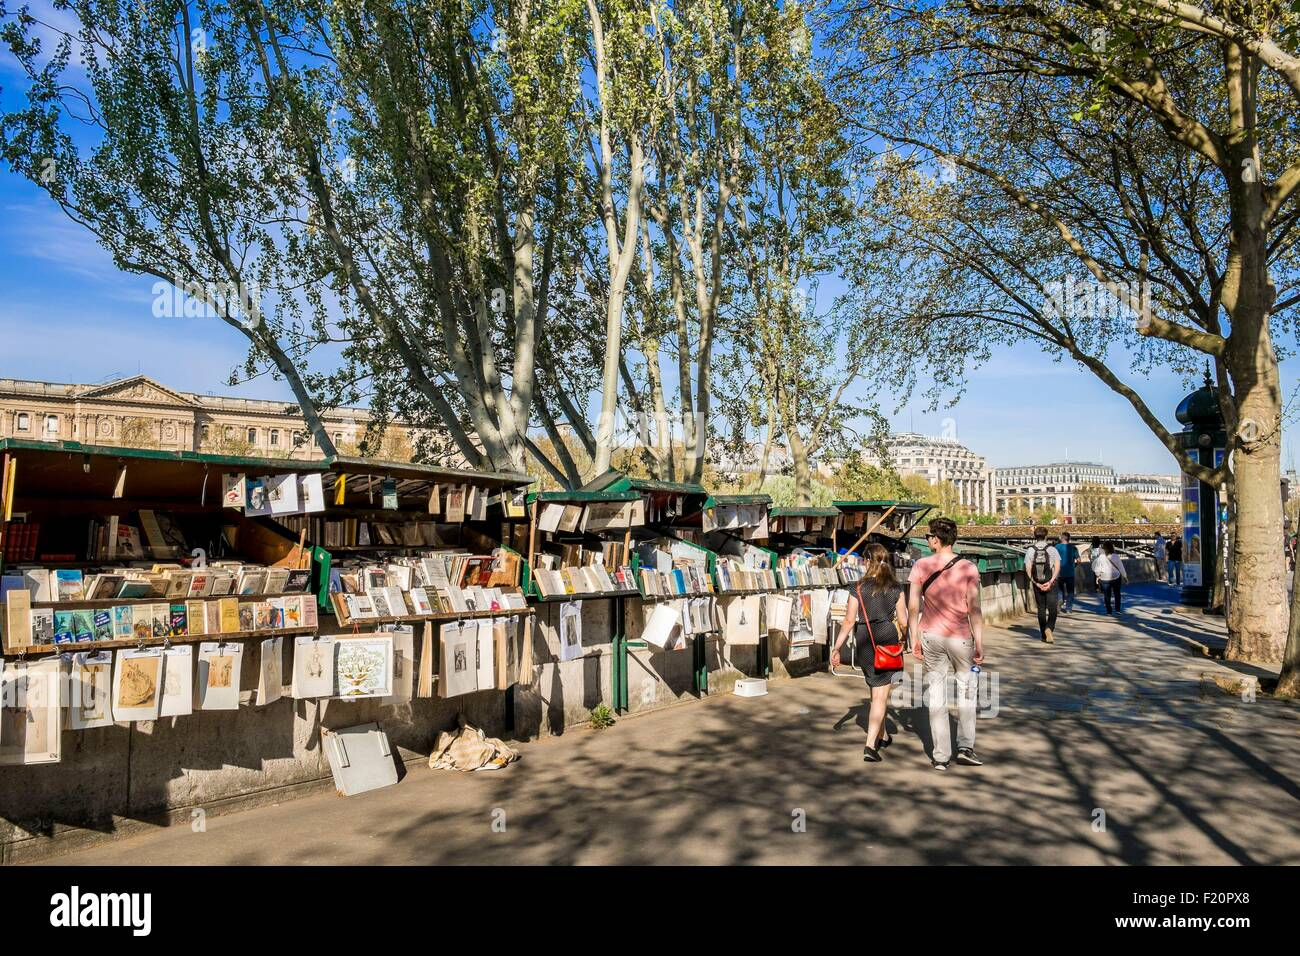 France, Paris, the booksellers of the Seine River - Stock Image